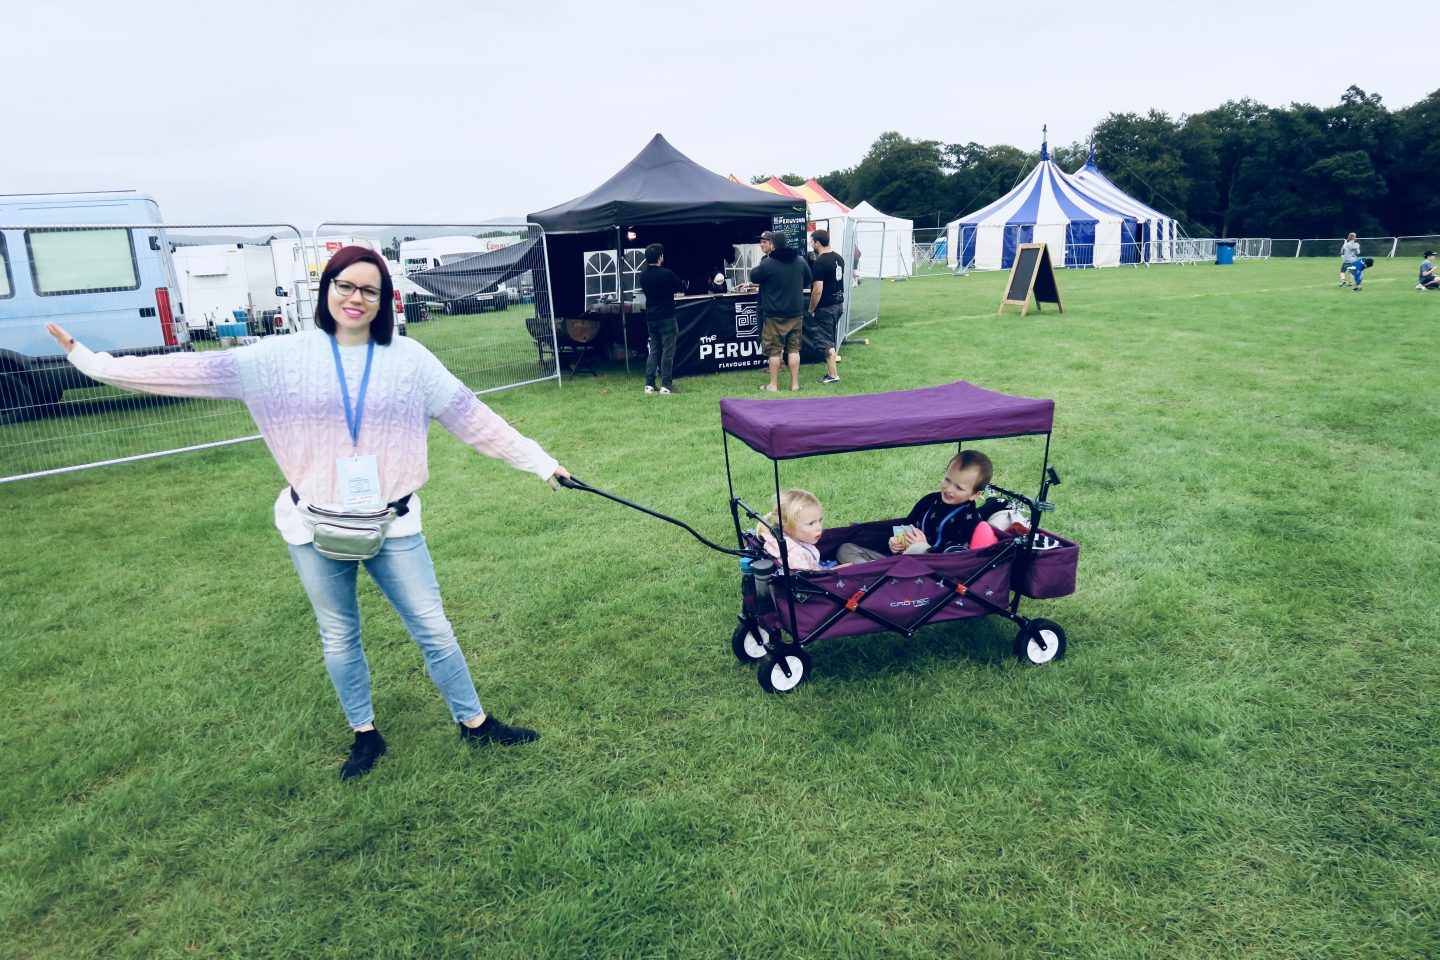 Woman pulling a wagon with kids inside it at a festival.